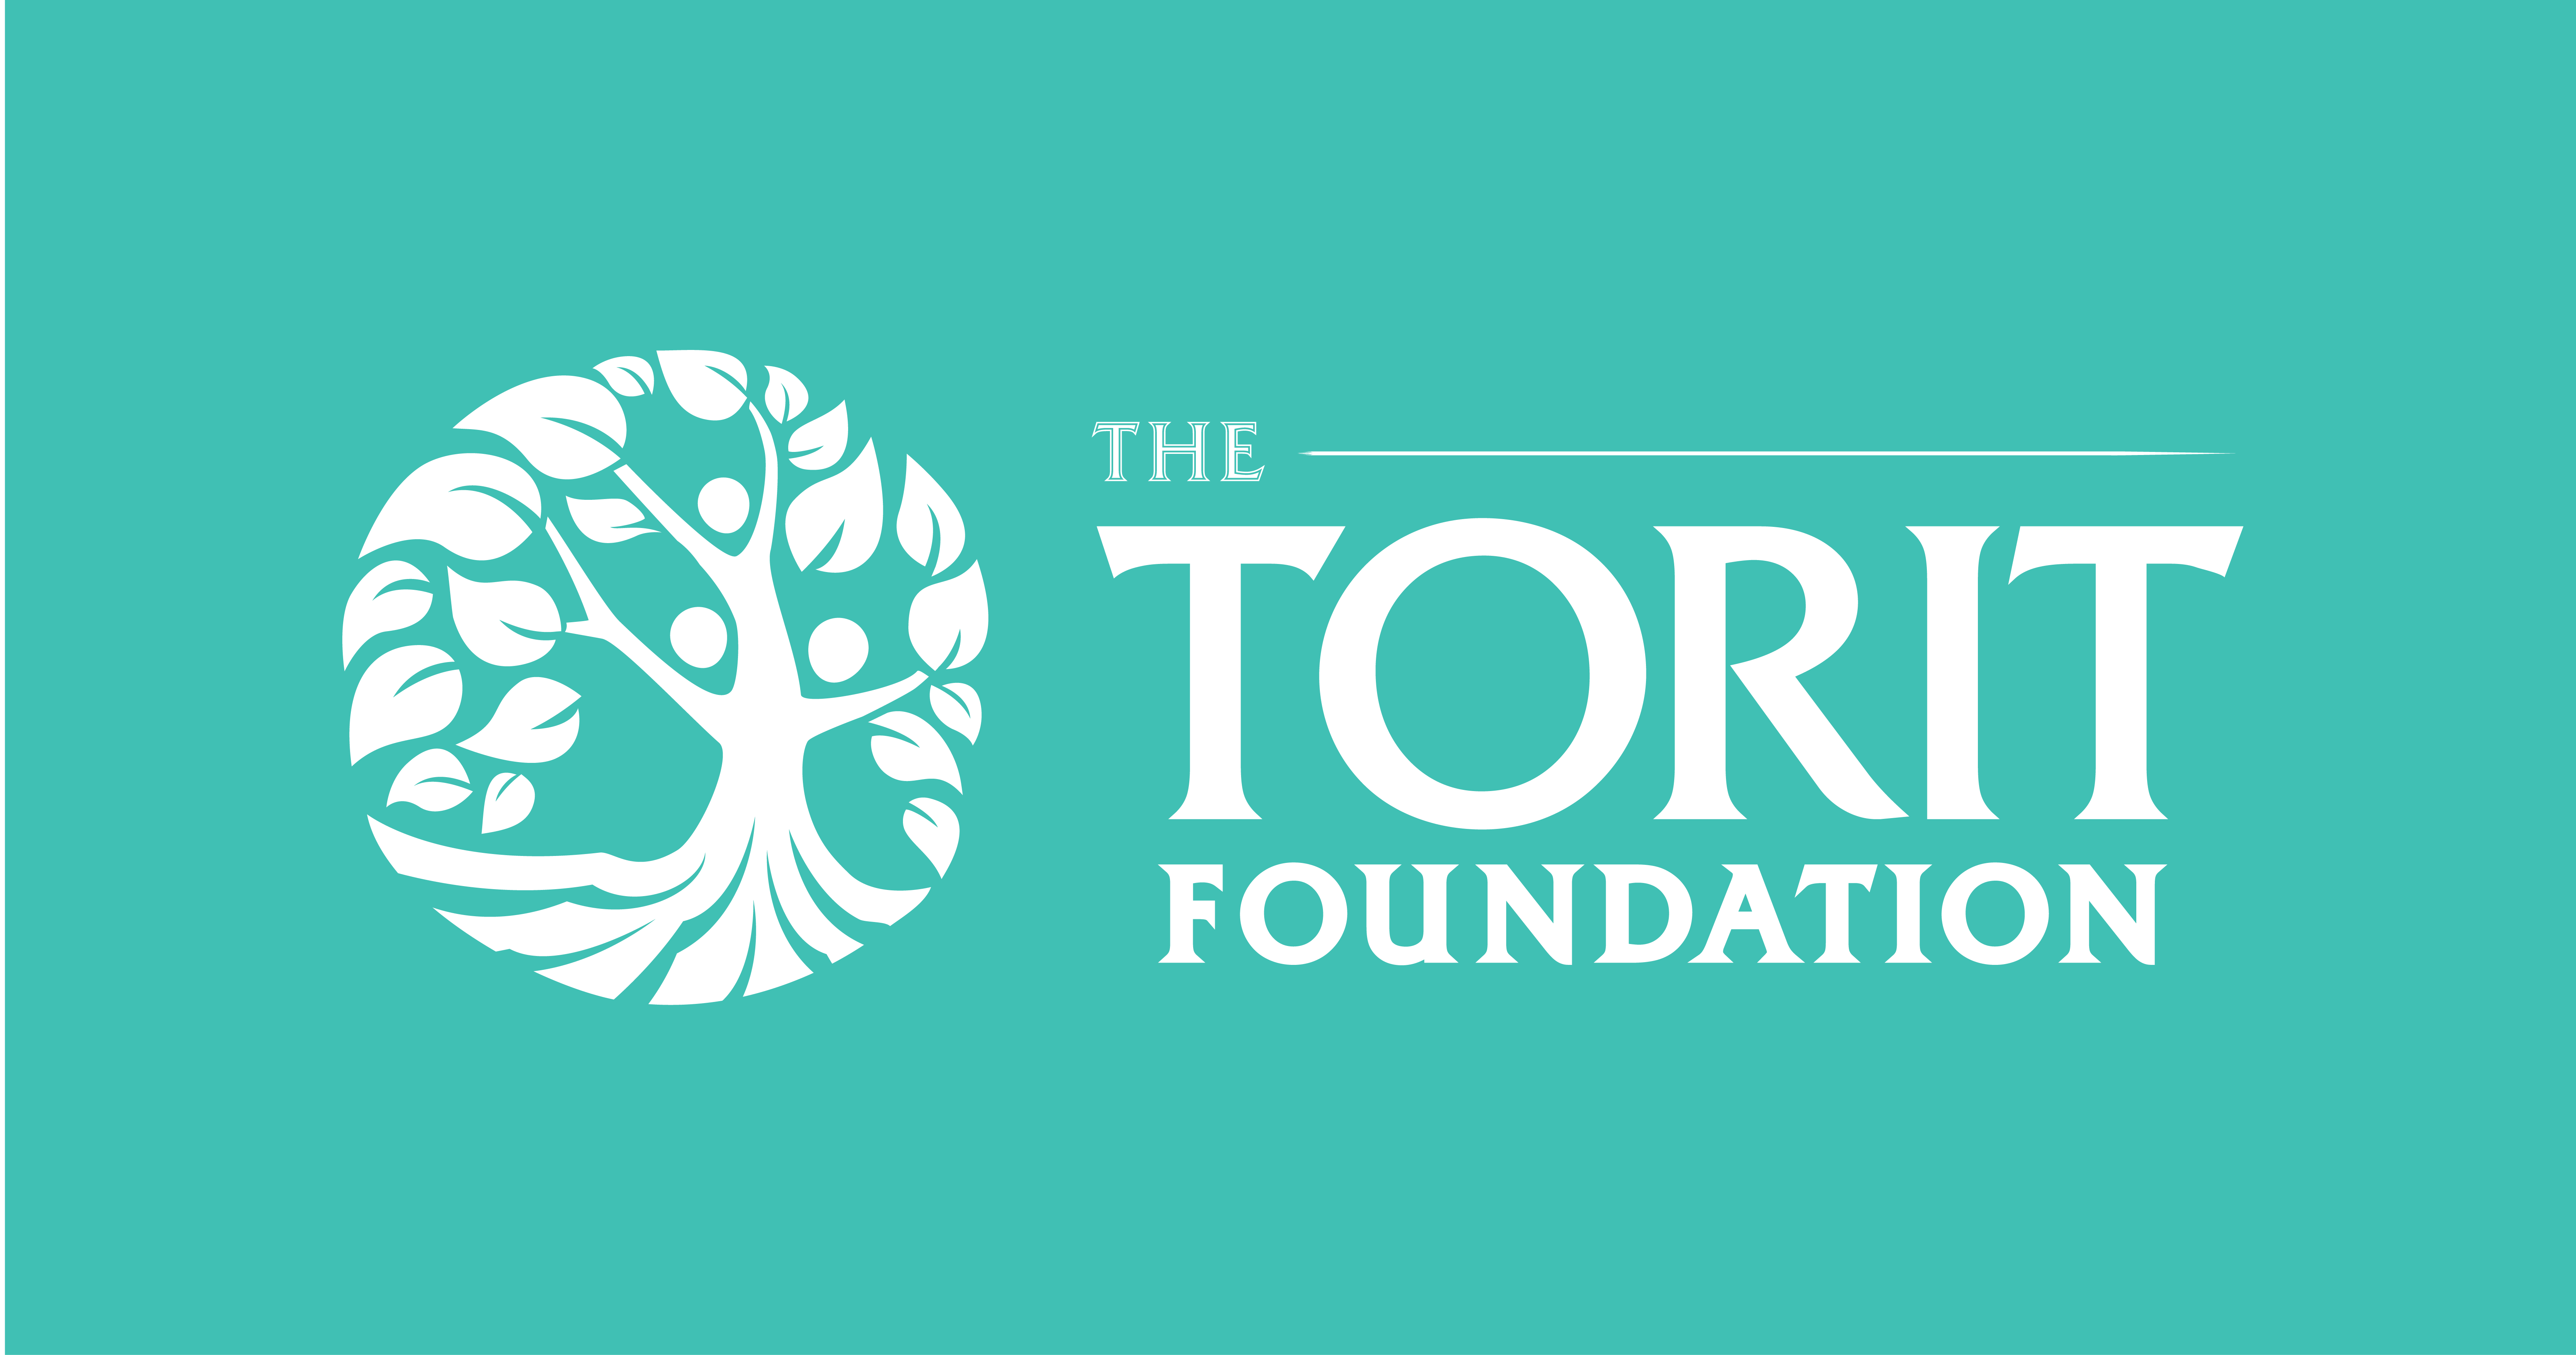 Support a Foundation supporting Education